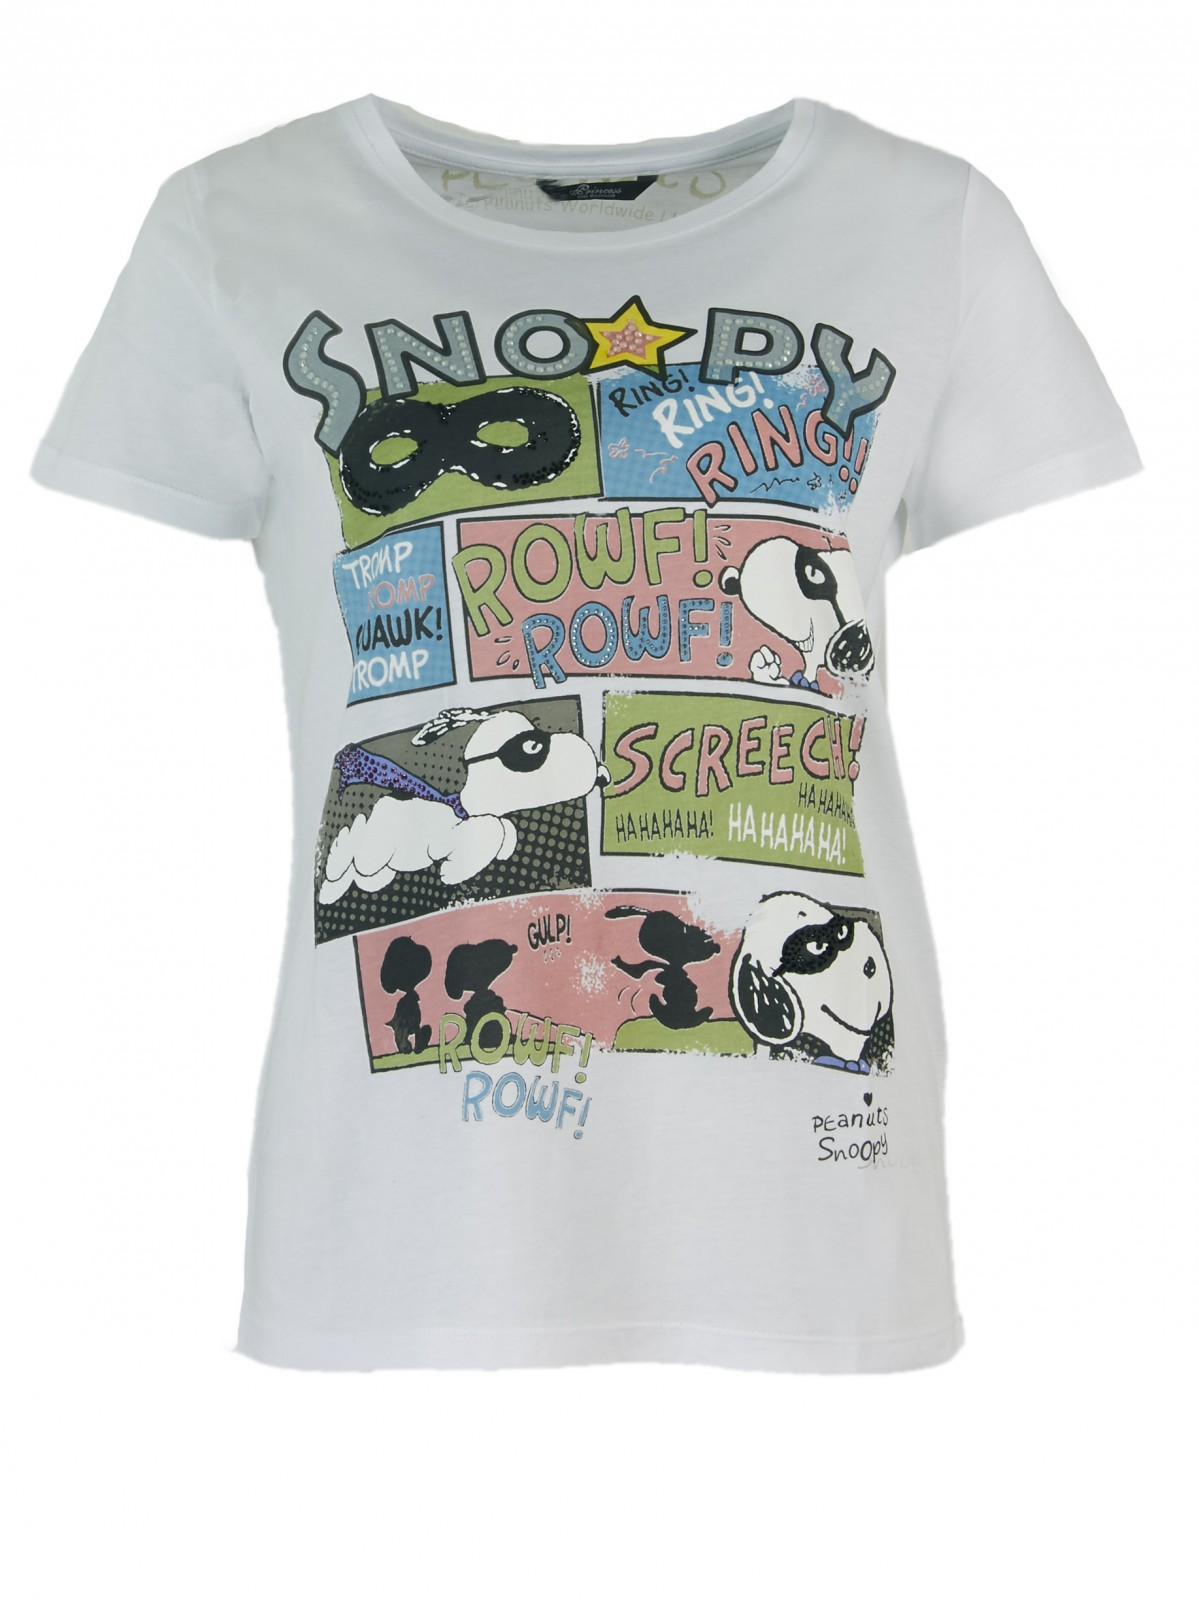 Snoopy Marvel Comic T-Shirt